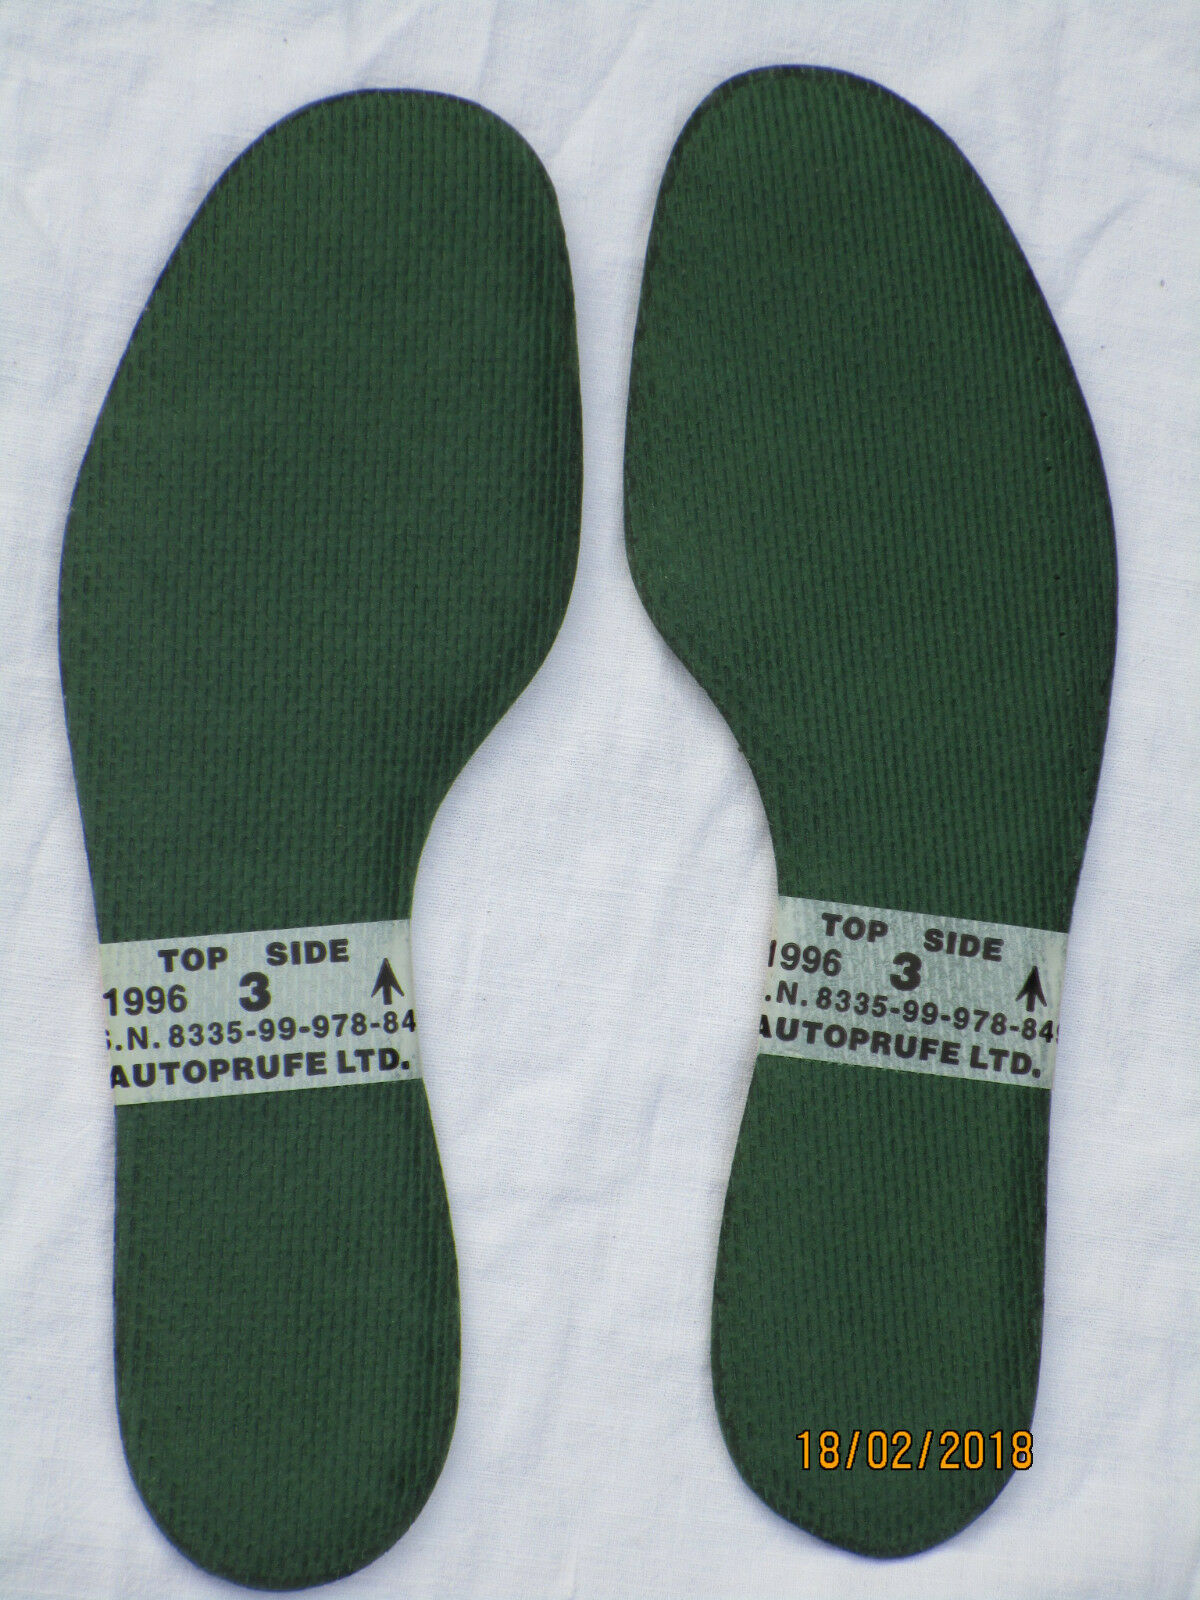 Insoles for GB Boots, Green, size 3= Length 235mm, for GB for Combat Boots, 1996 e64b75